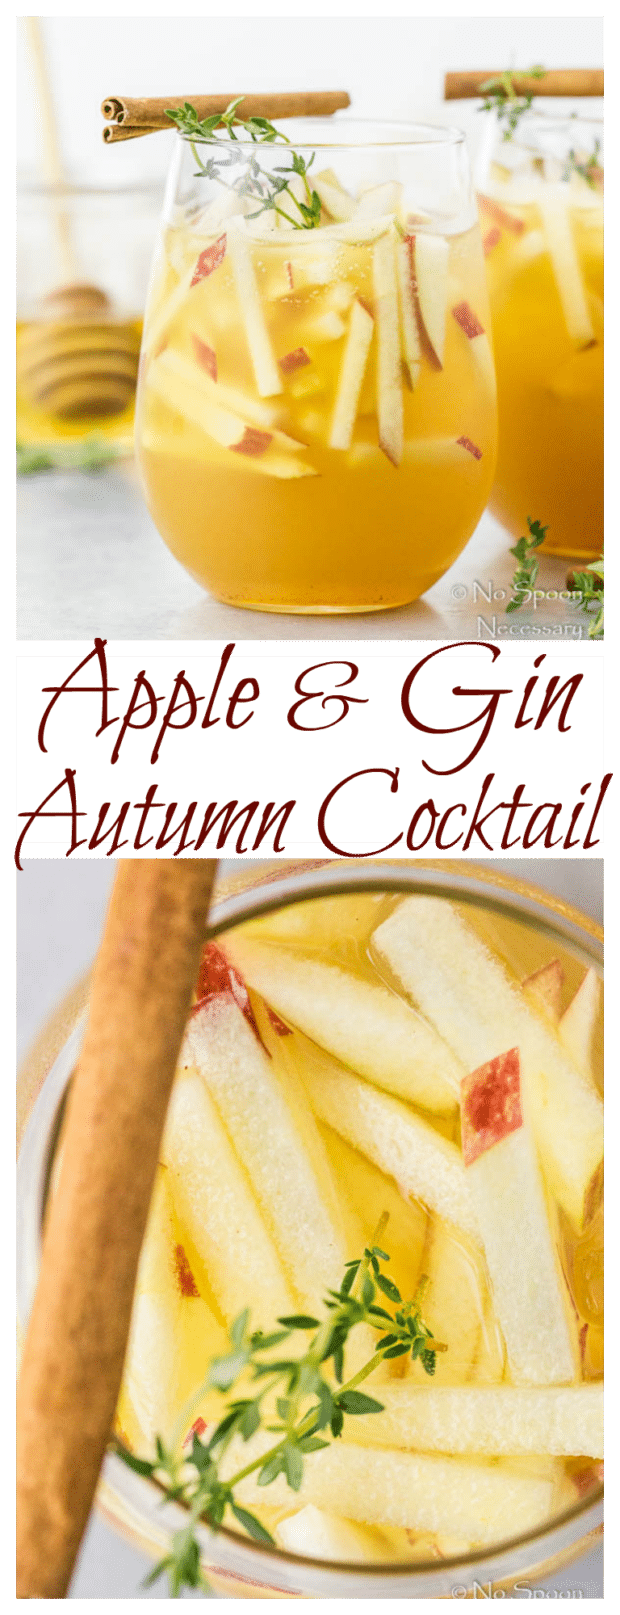 Apple & Gin Autumn Cocktail